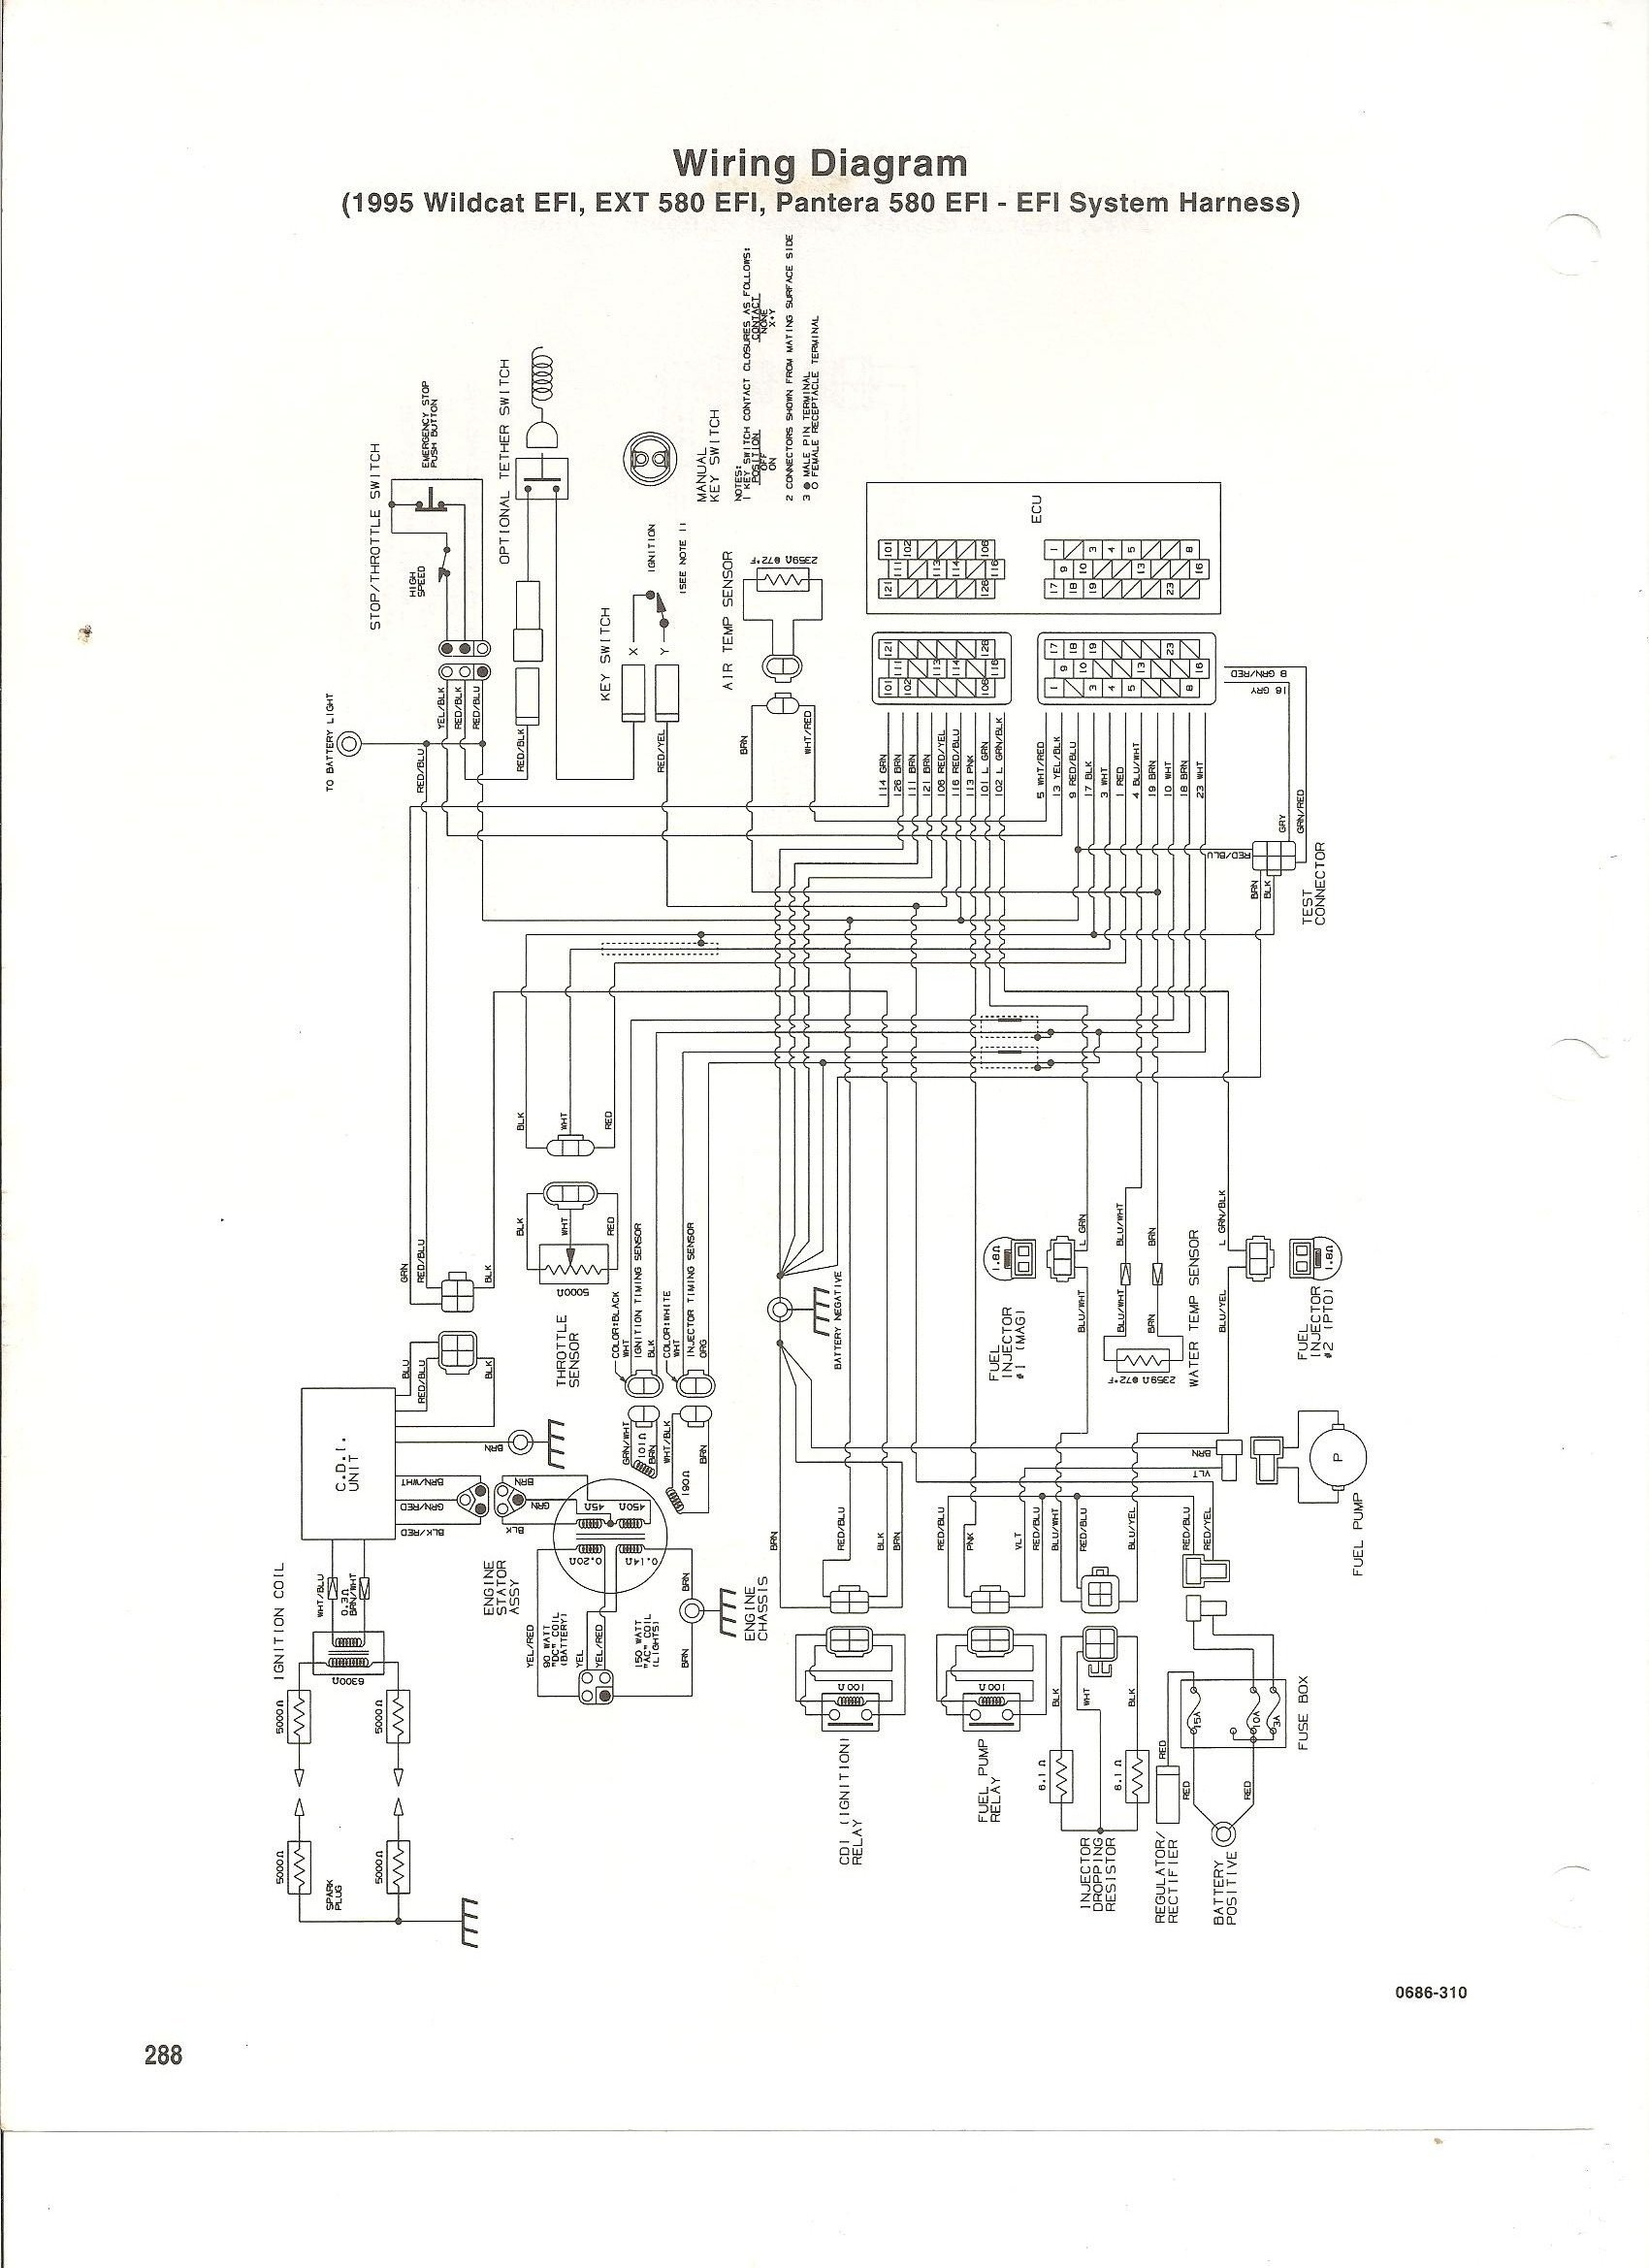 polaris 300 wiring diagram polaris wiring diagrams cars